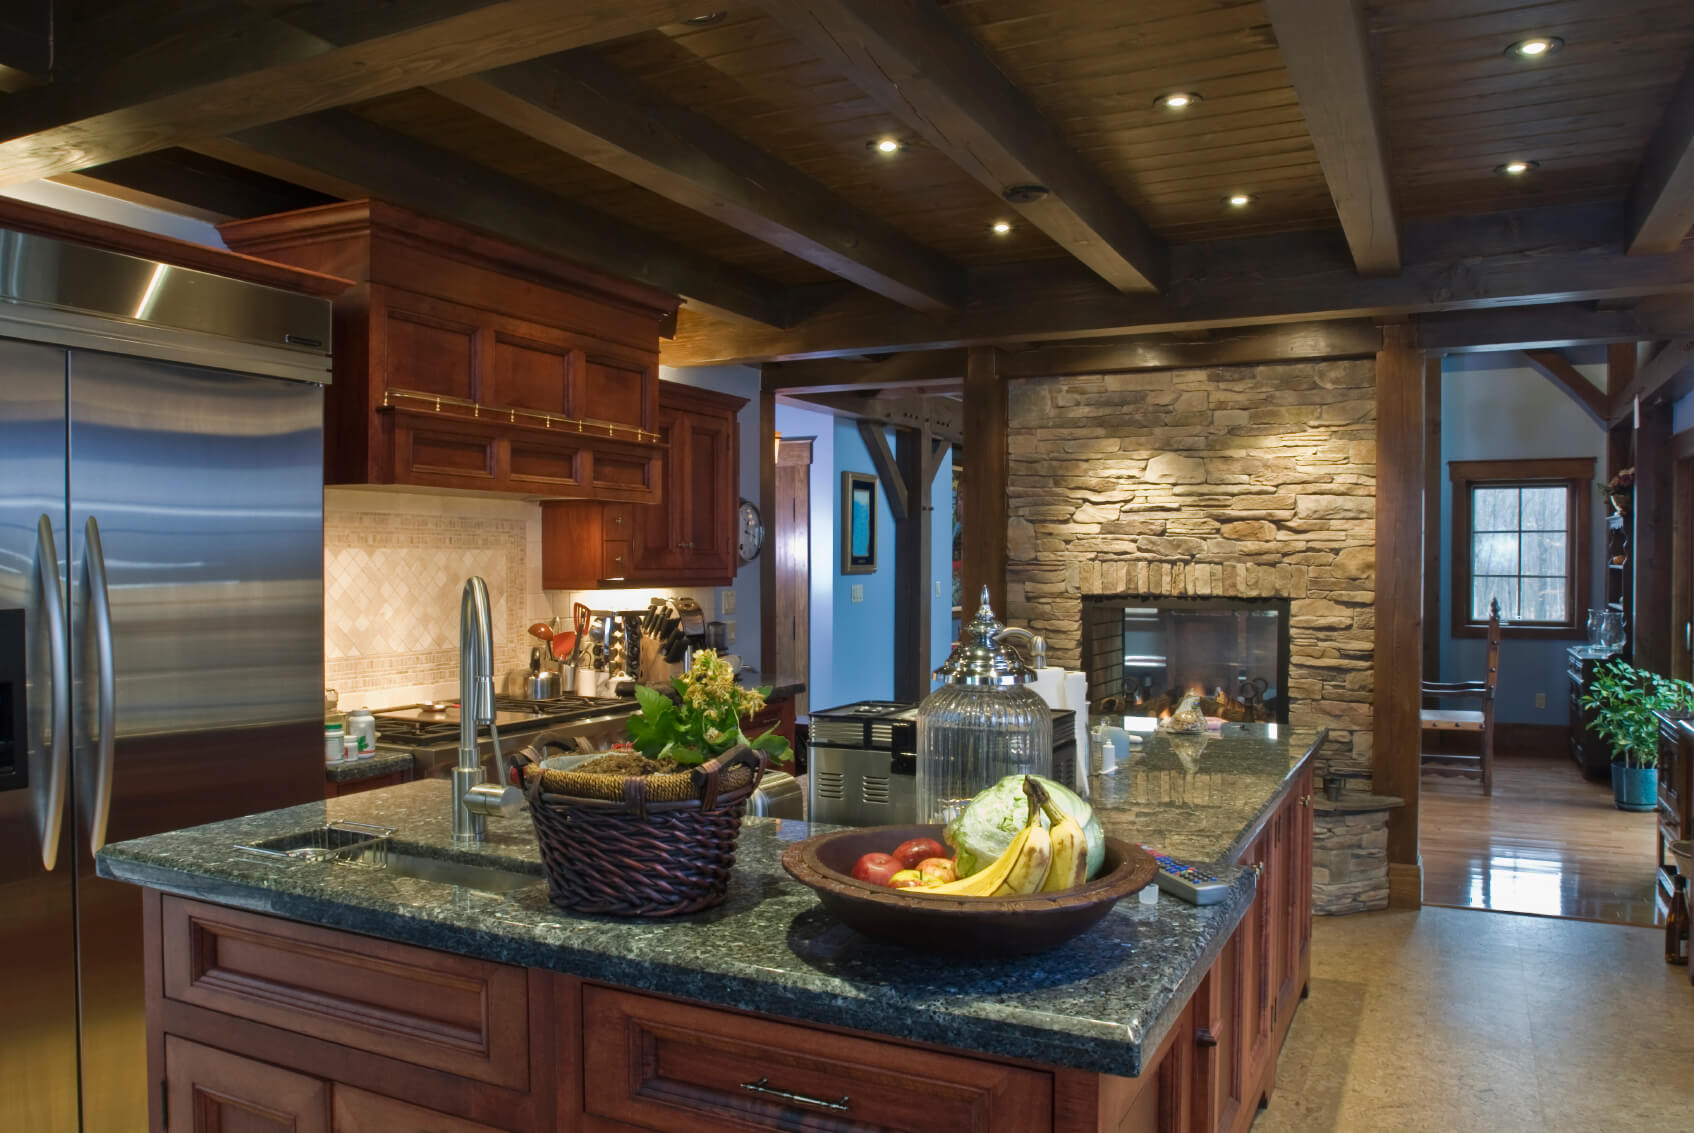 rustic look kitchen features brick pass through fireplace under dark wood exposed beams with